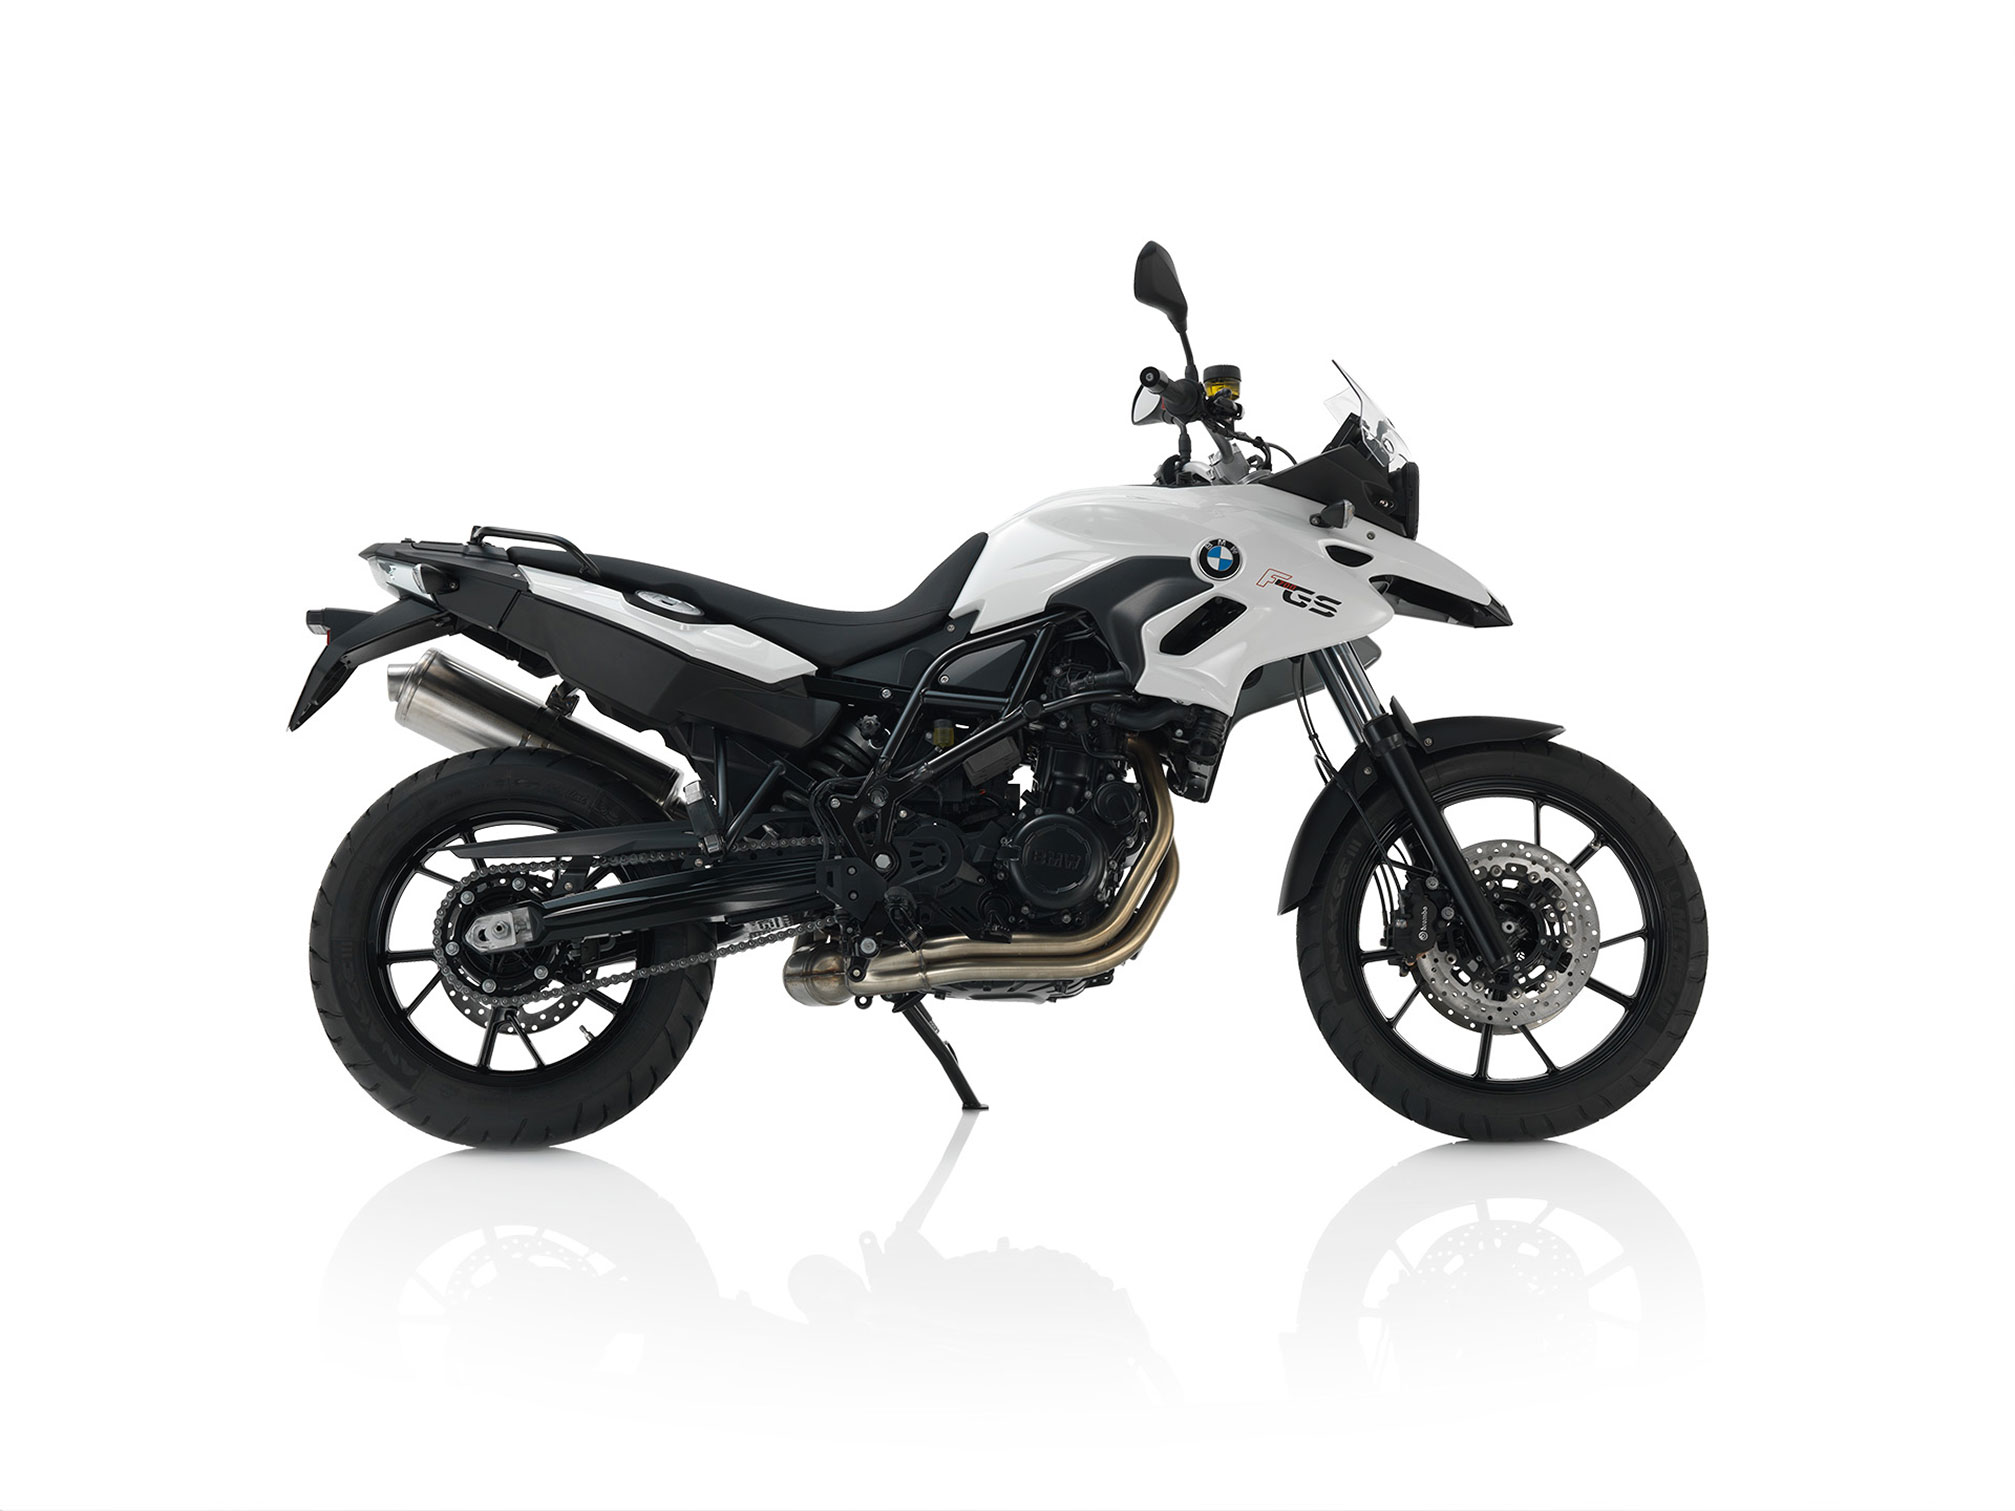 2015 BMW F700GS Review